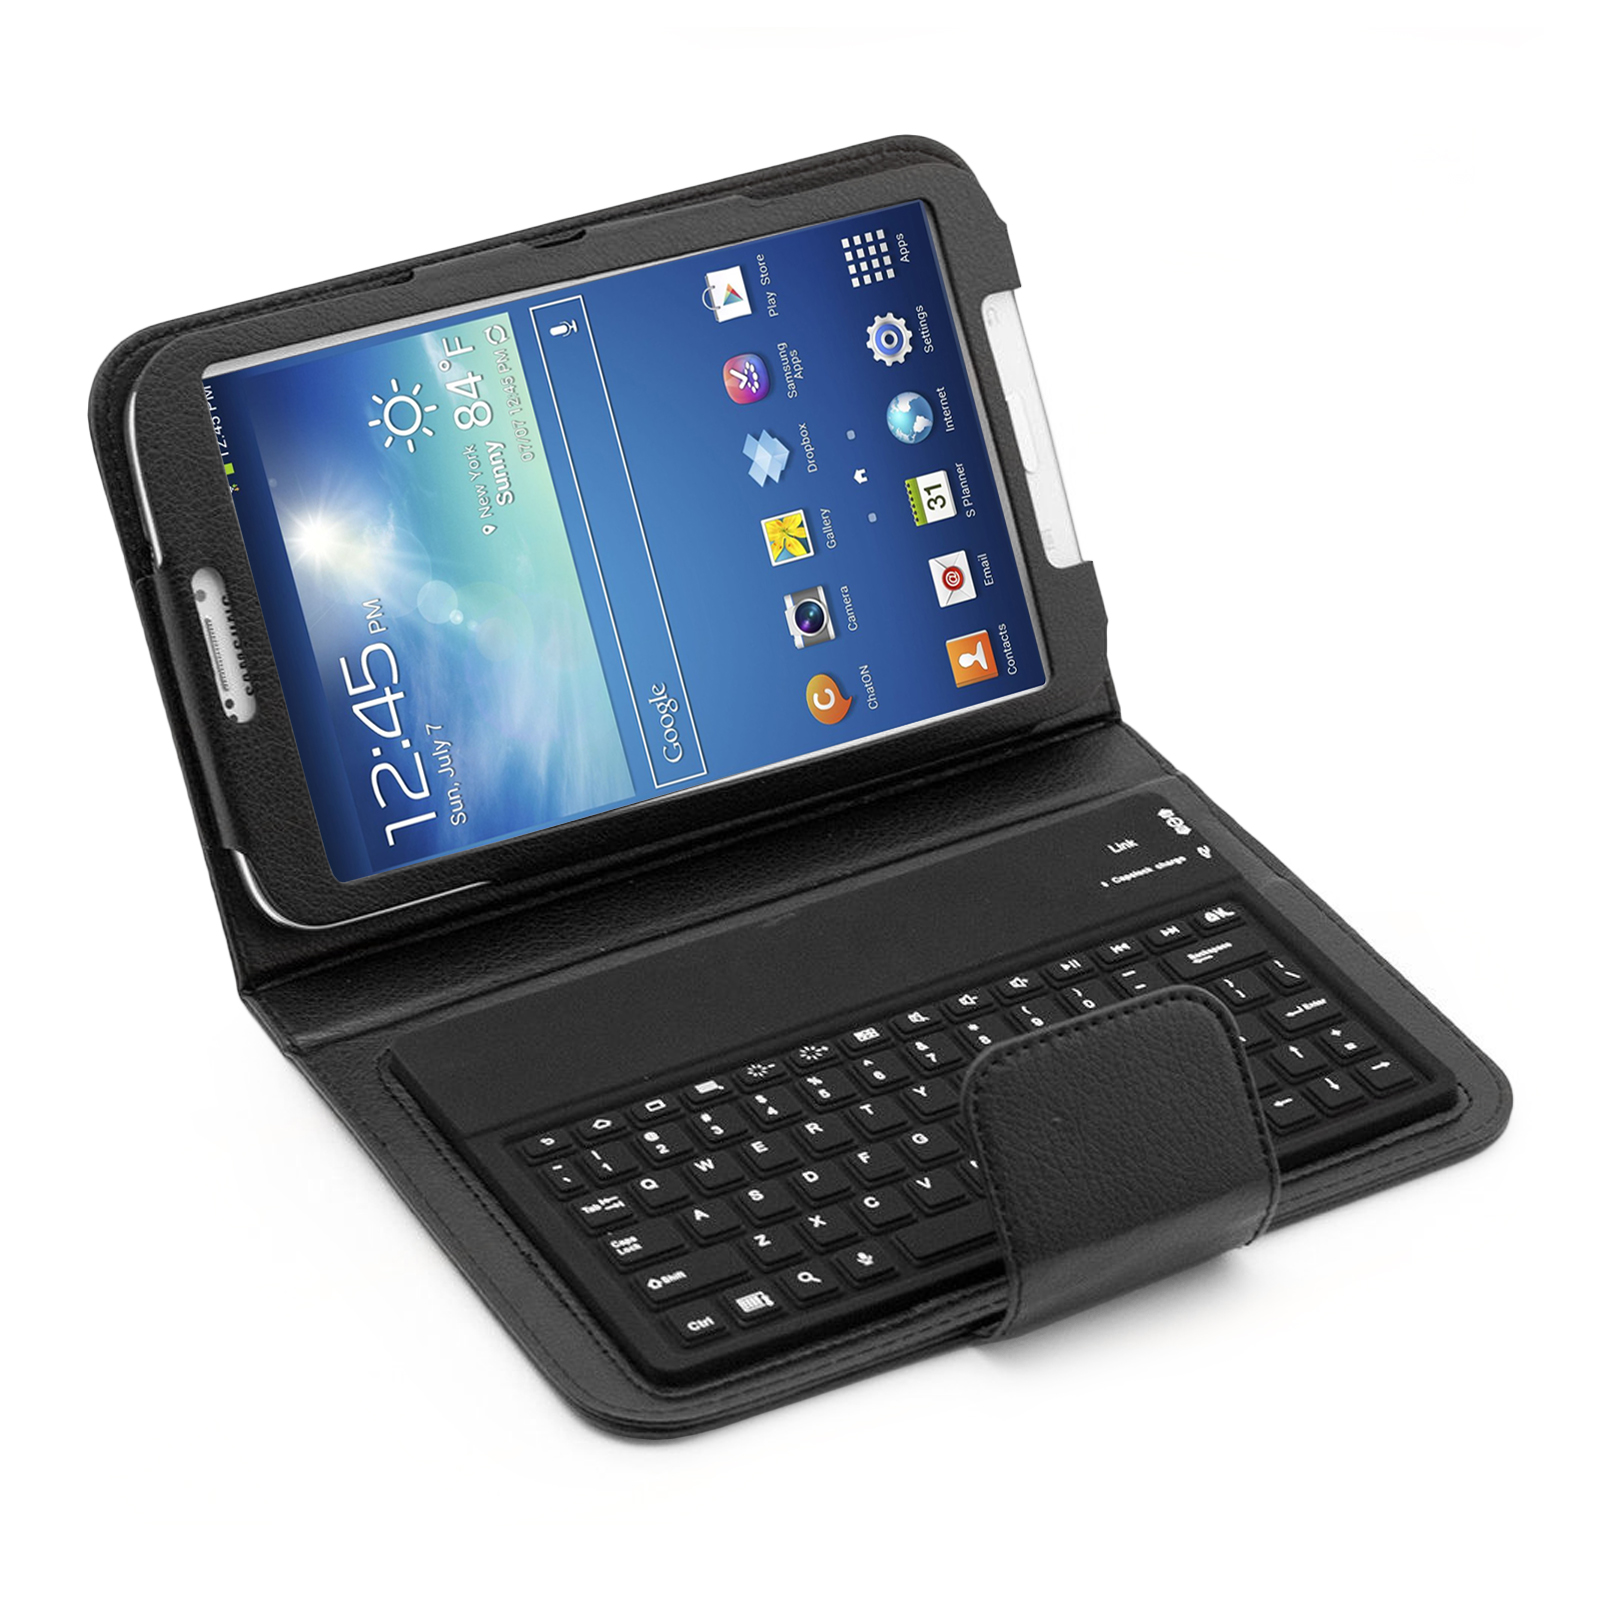 "Bluetooth Keyboard Folio for Samsung Galaxy Tab 3 8.0"" Tablet (87438)"